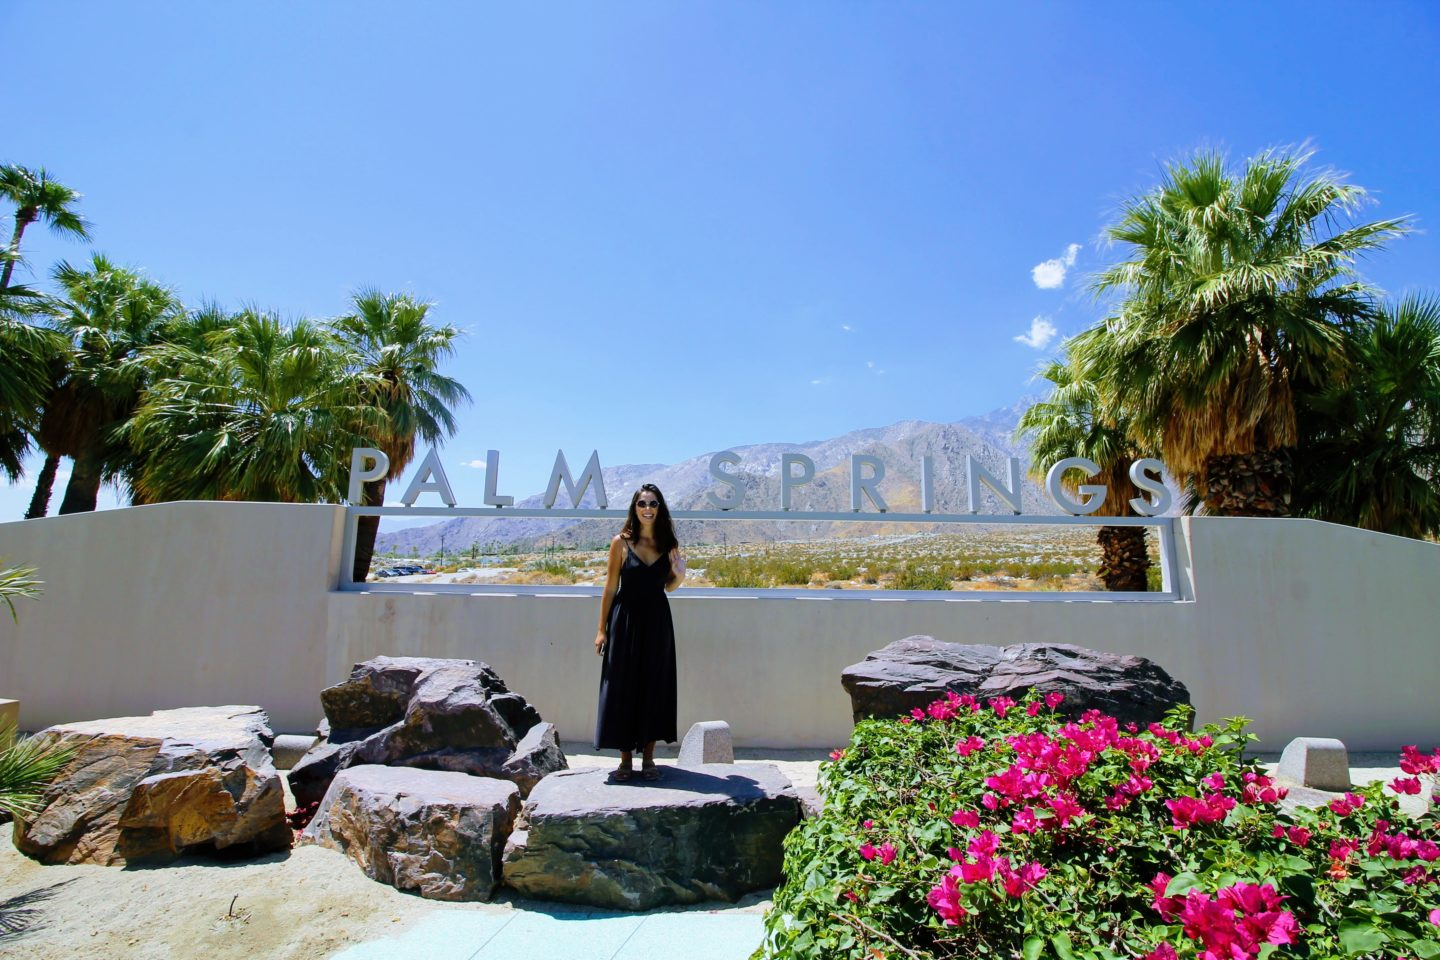 The Ultimate Palm Springs Travel Guide